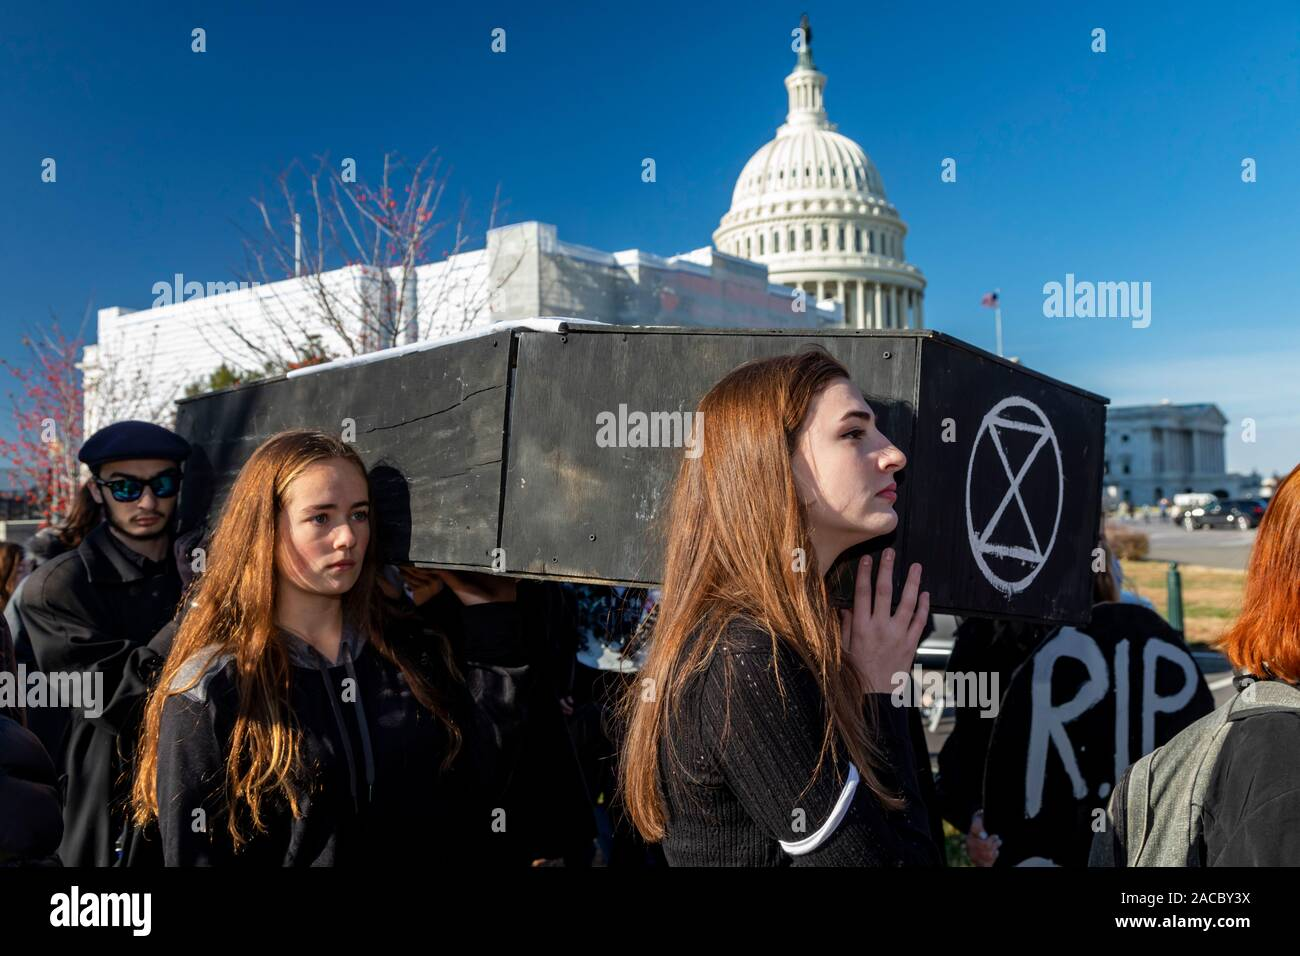 """Washington, DC - Young activists held a """"Funeral for Future"""" on Capitol Hill to demand that governments address the crisis of climate change. It was p Stock Photo"""